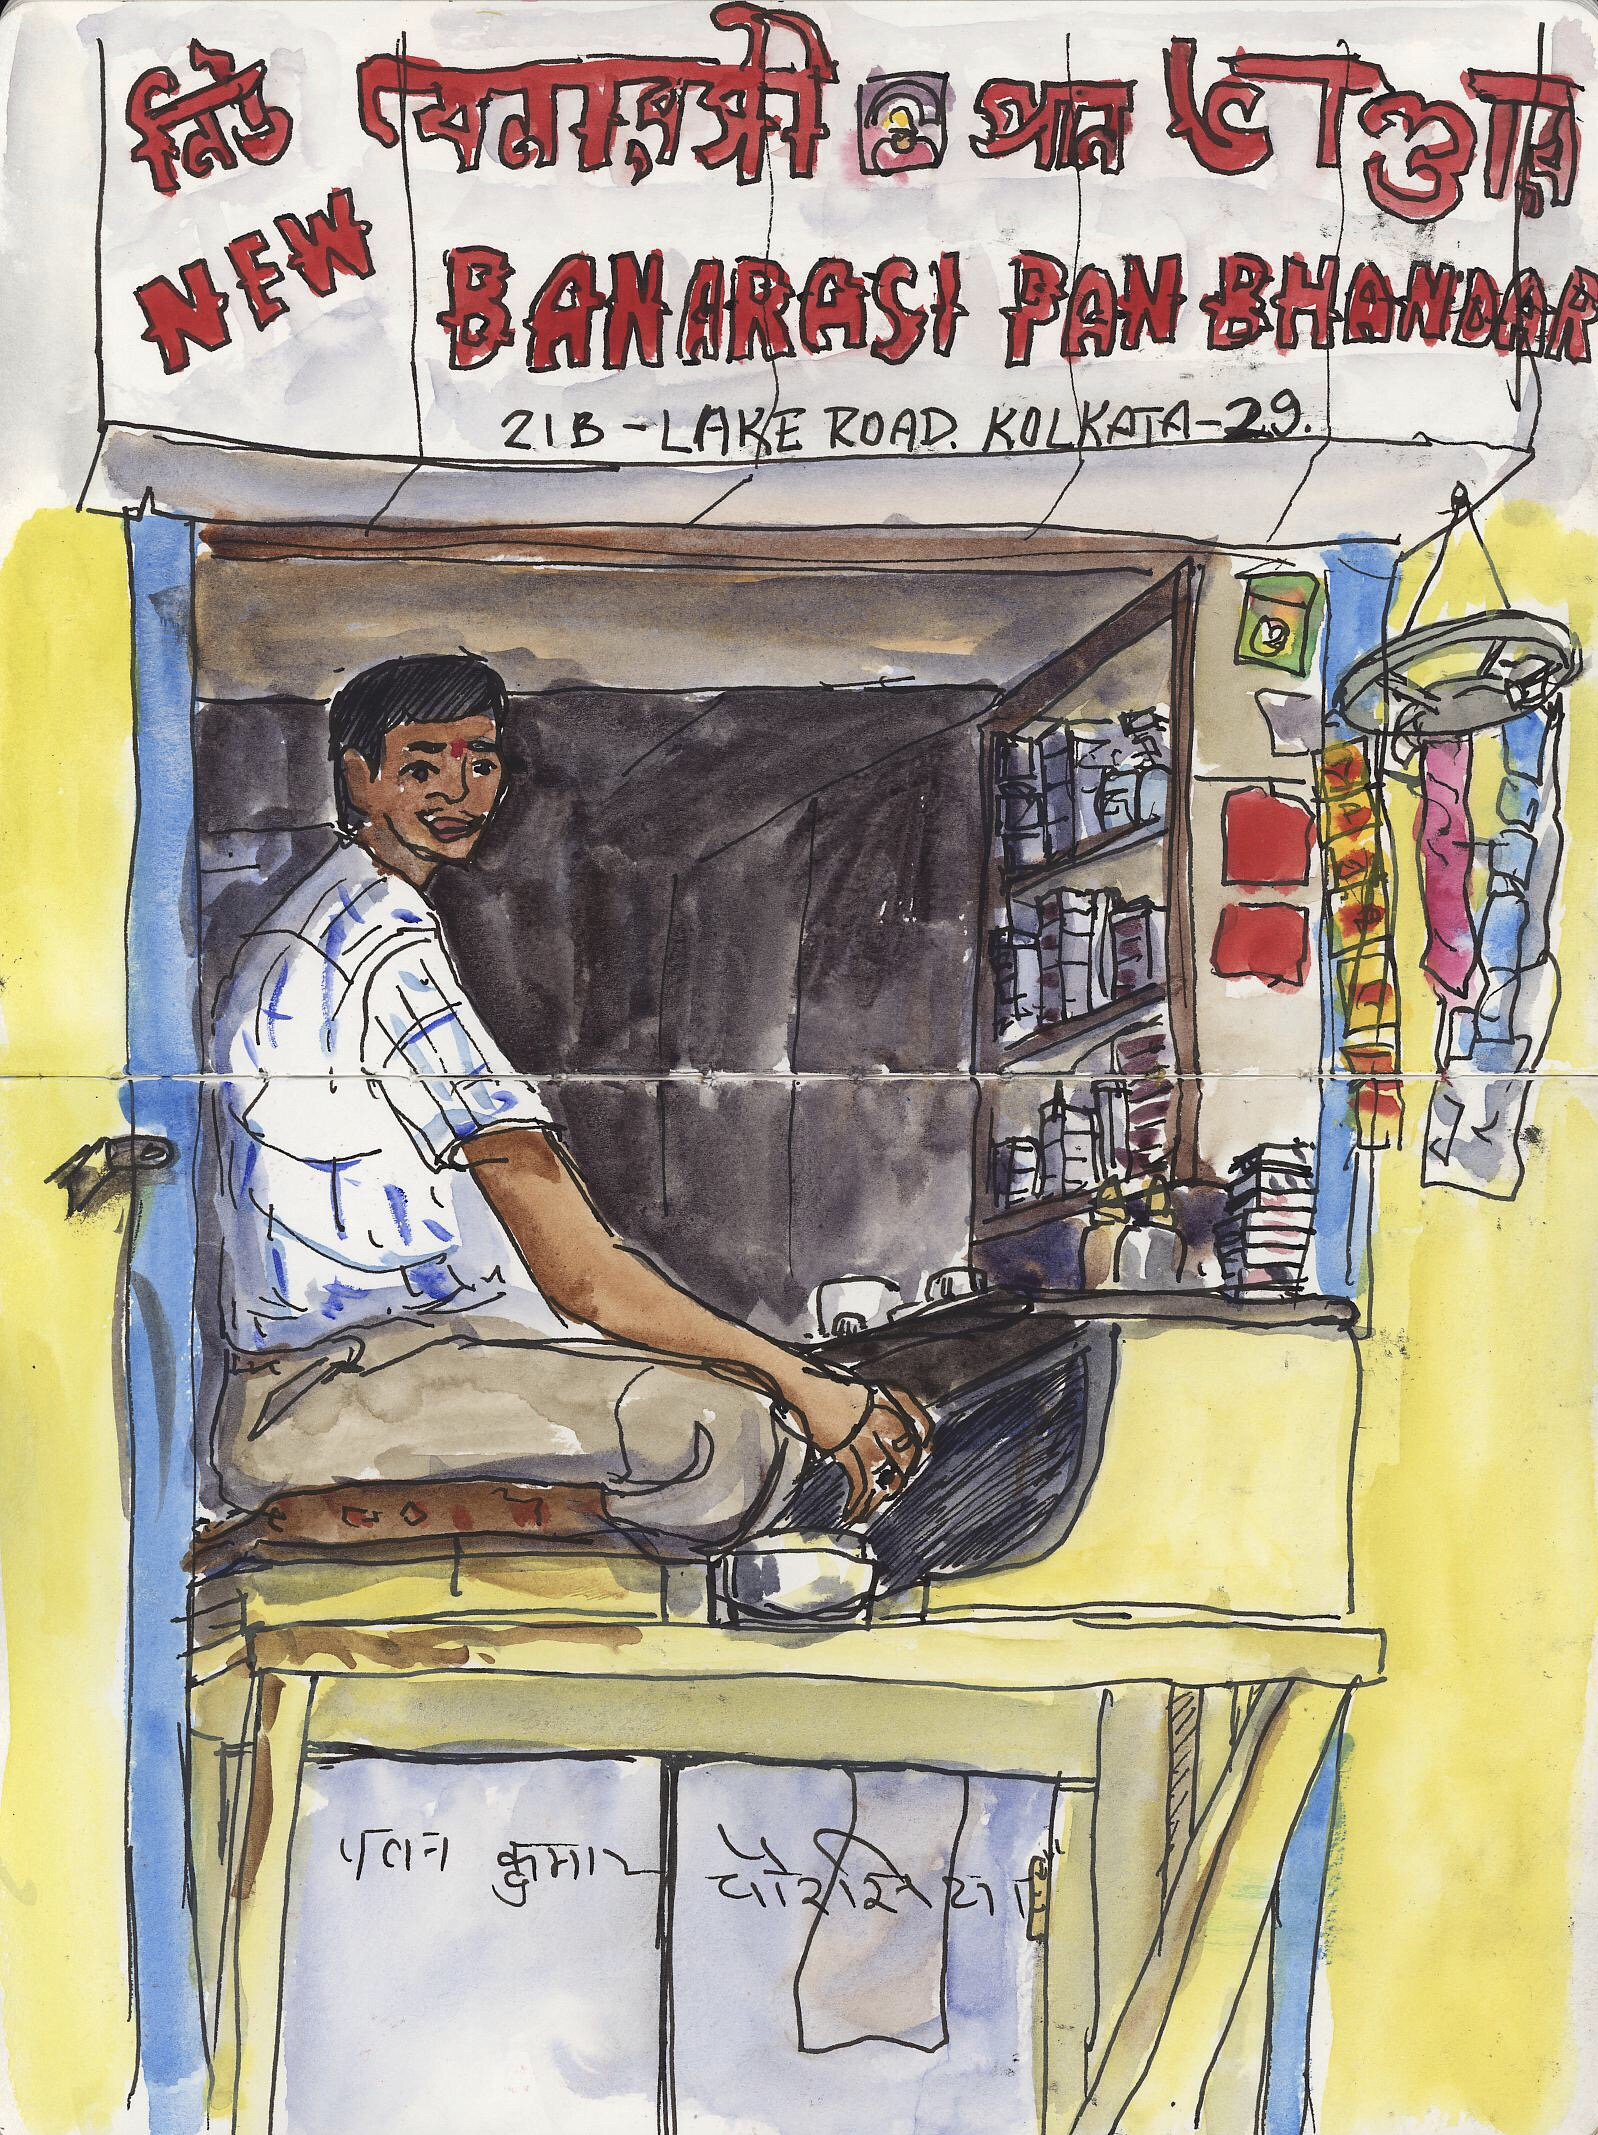 Many of the stores in Kolkata were tiny, sometimes just alcoves with the proprietor sitting on a shelf. This store was just down the block from our friend's house and we got our water from them. They didn't speak much English, but whenever they saw us coming, they'd get out the water! Doing this sketch in the neighborhood attracted around forty people in the hour and a half it took me to do it. I had a group of older gentlemen move their bench so they could sit directly behind me and watch my every move!